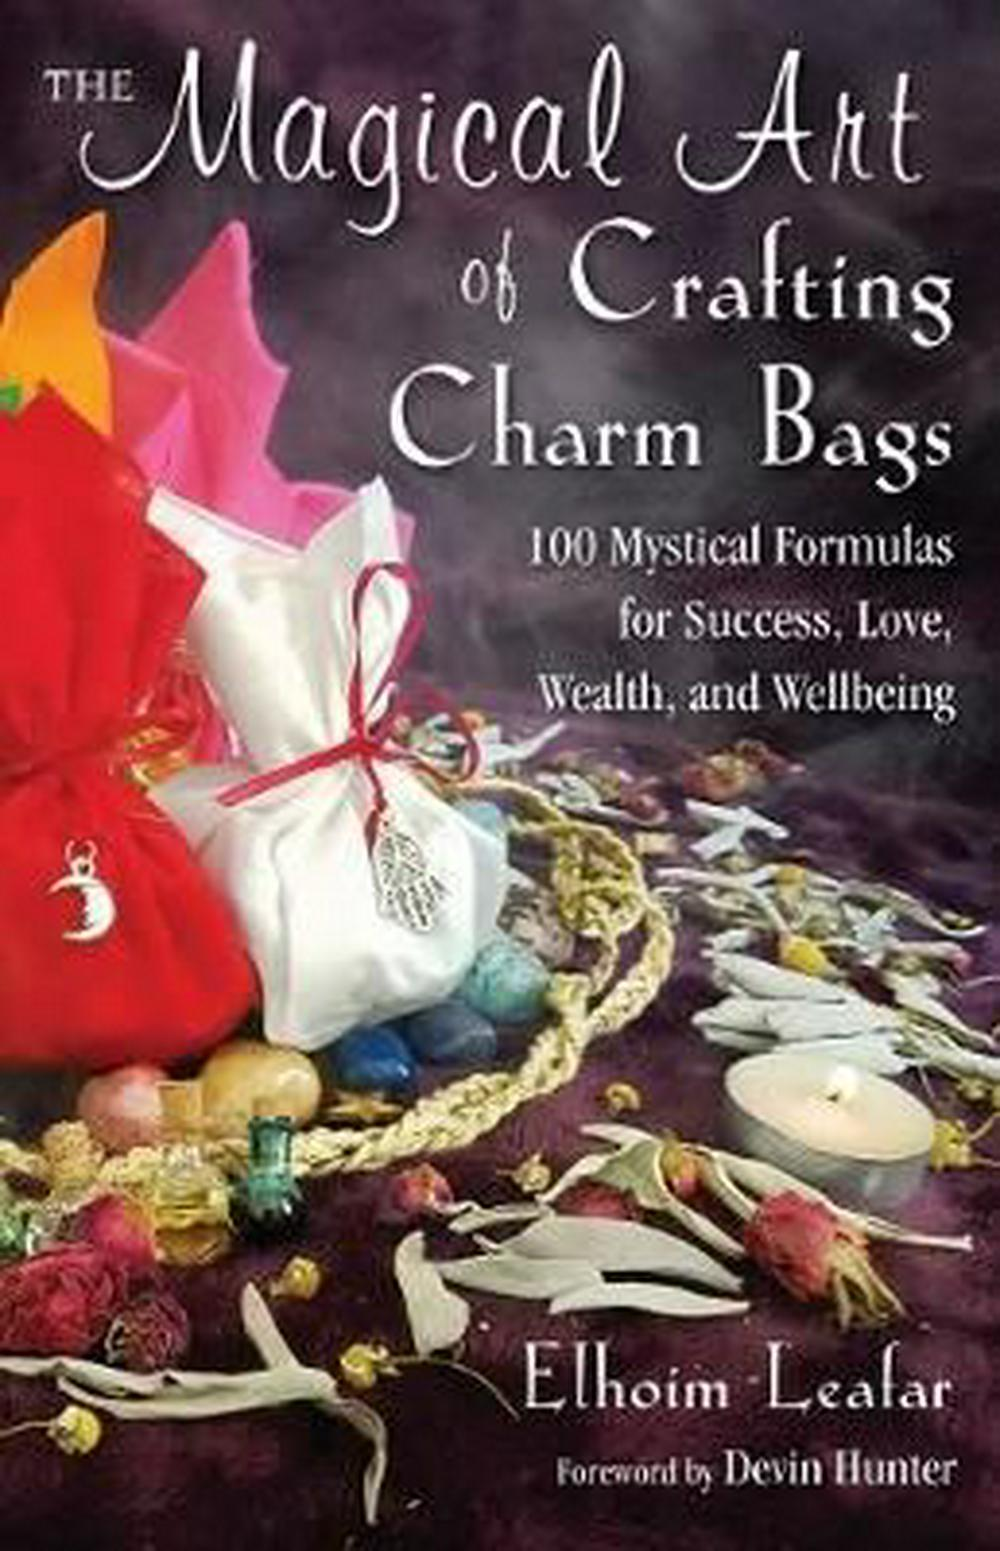 The Magical Art of Crafting Charm Bags (Elhoim Leafar)